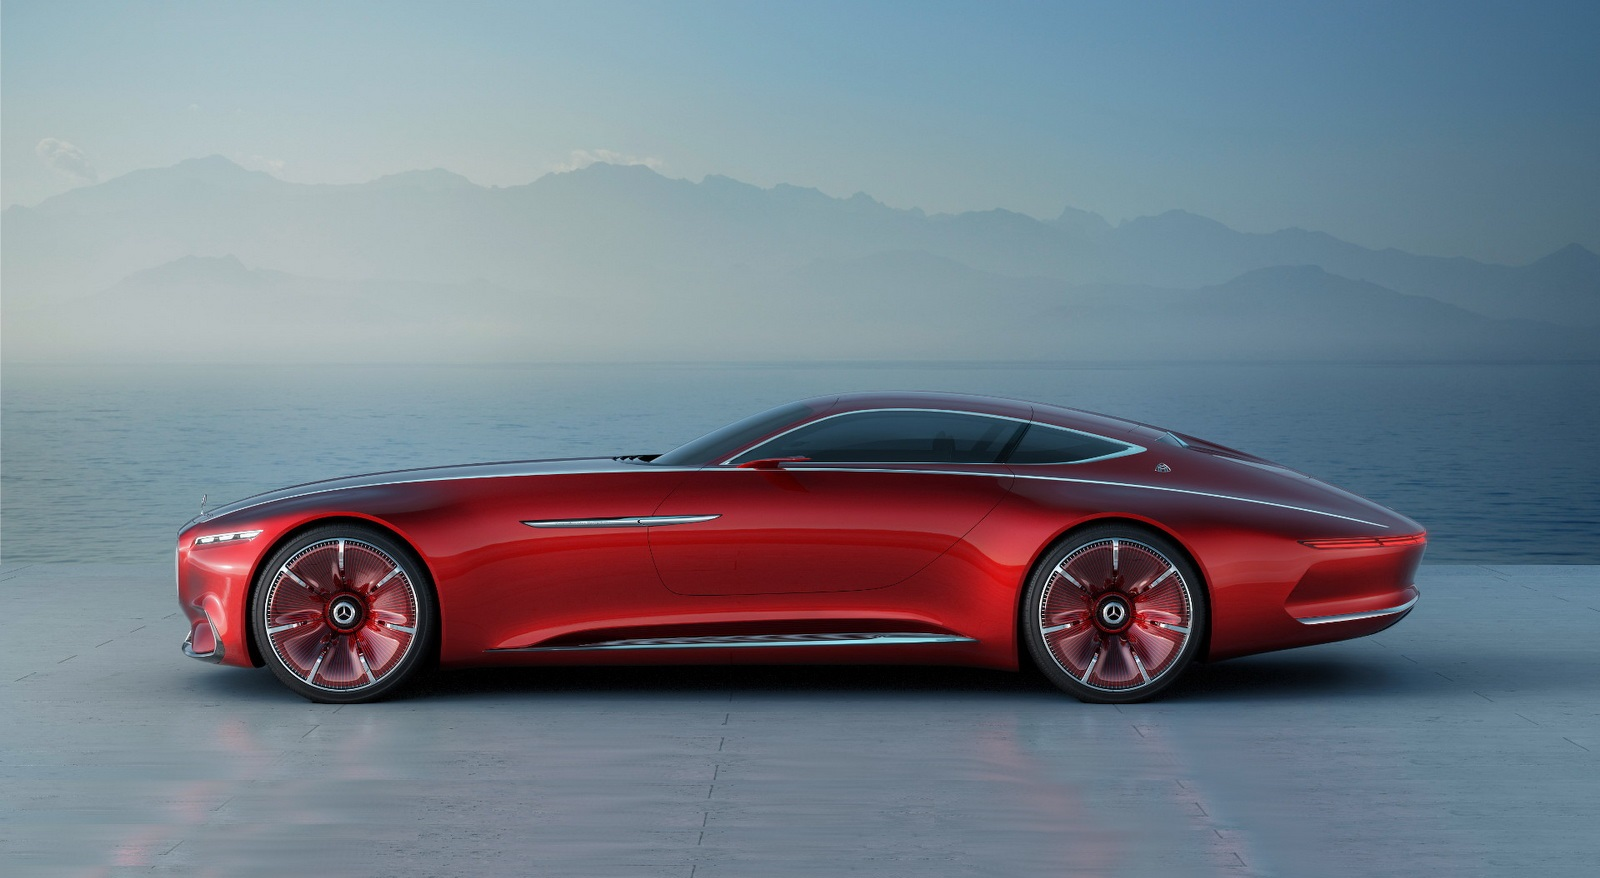 Vision Mercedes-Maybach 6 Concept ������ ���������� ����� ����������� ������� ����